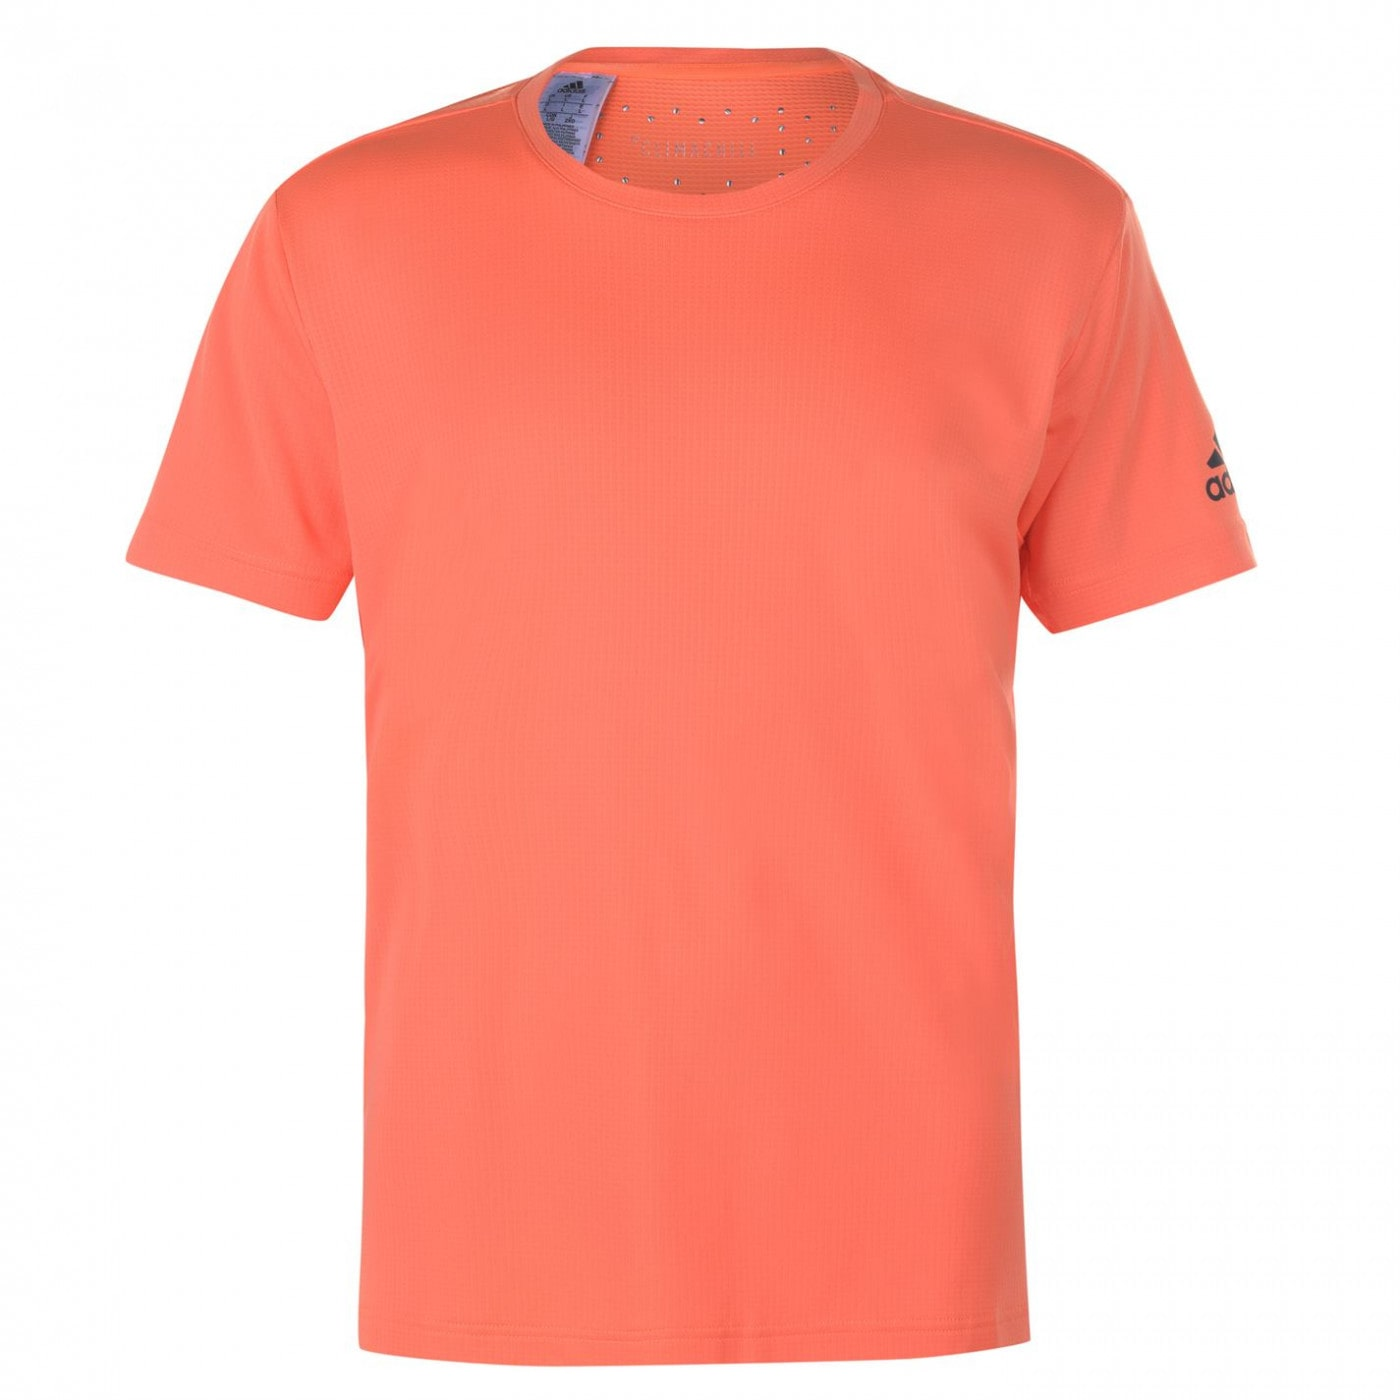 Adidas Free Lift Chill T Shirt Mens